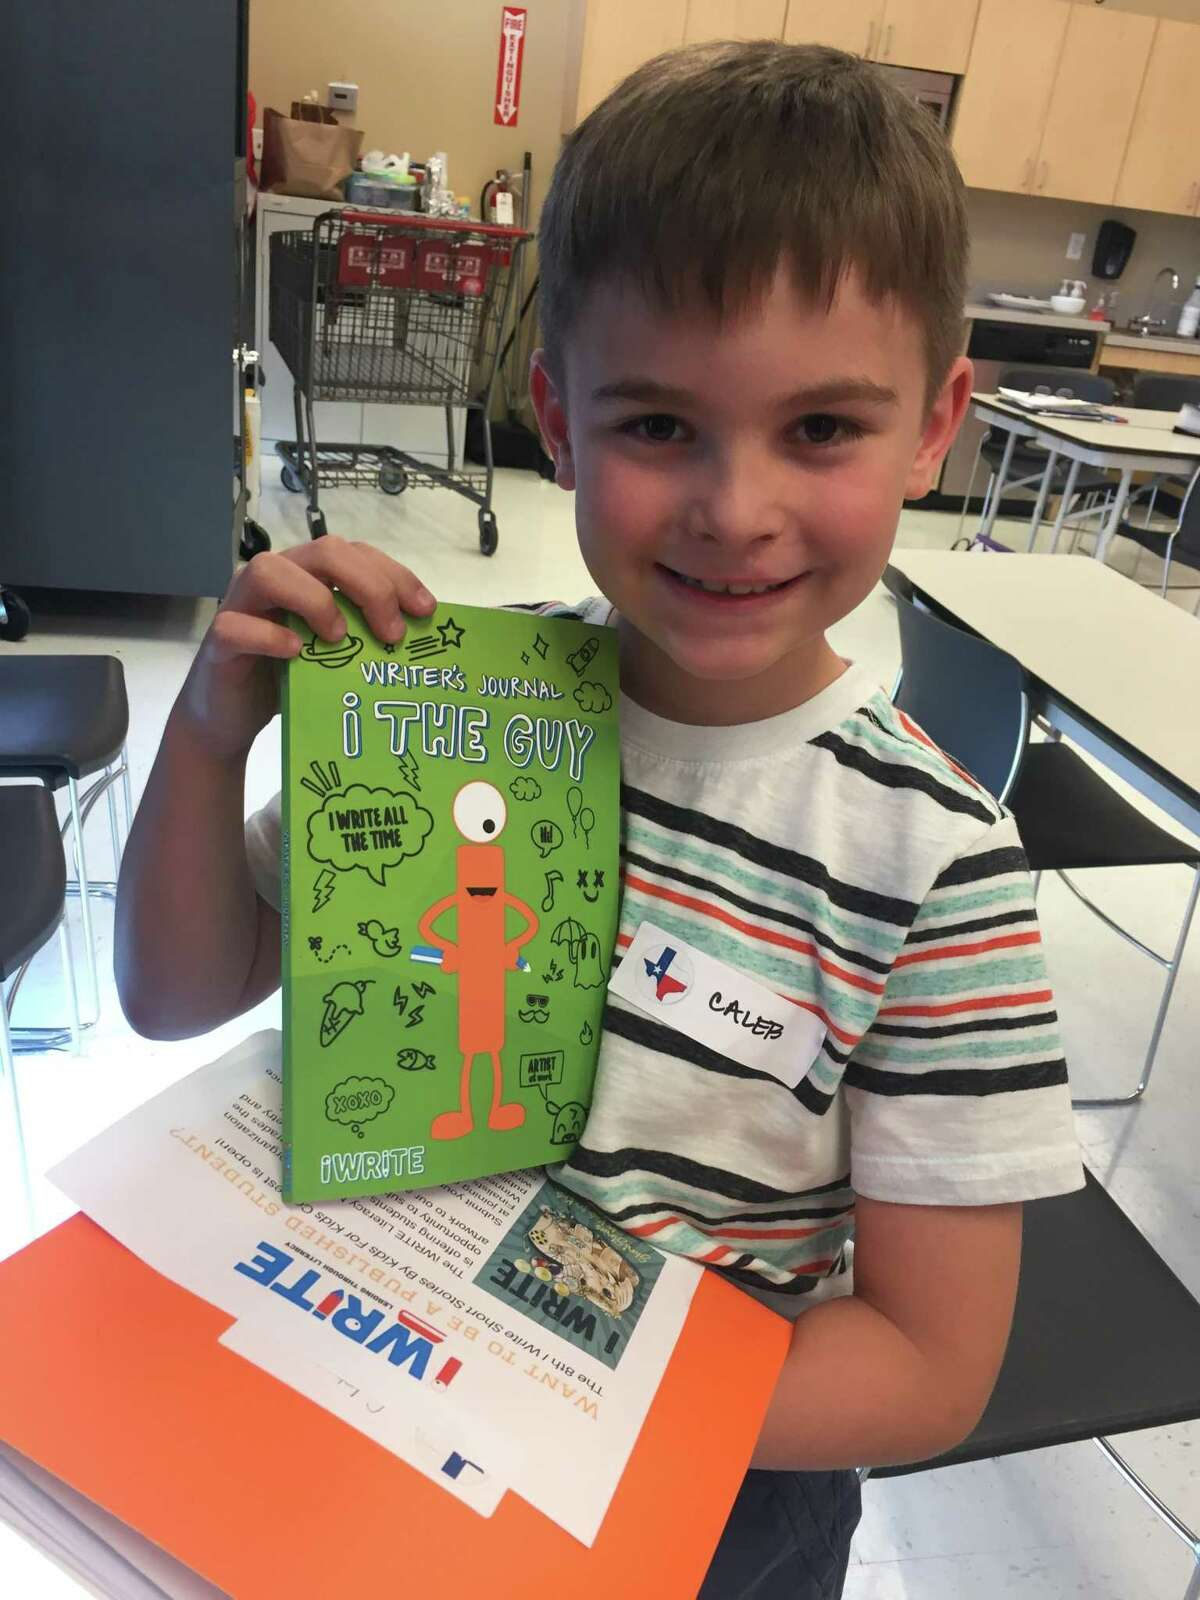 Caleb, a Katy Independent School District fourth grader at the (Robert and Felice) Bryant Elementary, is one of 78 student authors and illustrators to be honored at this years 9th Annual iWrite Luncheon & Book Signing Saturday, Oct. 27, at the Hyatt Regency in downtown Houston.